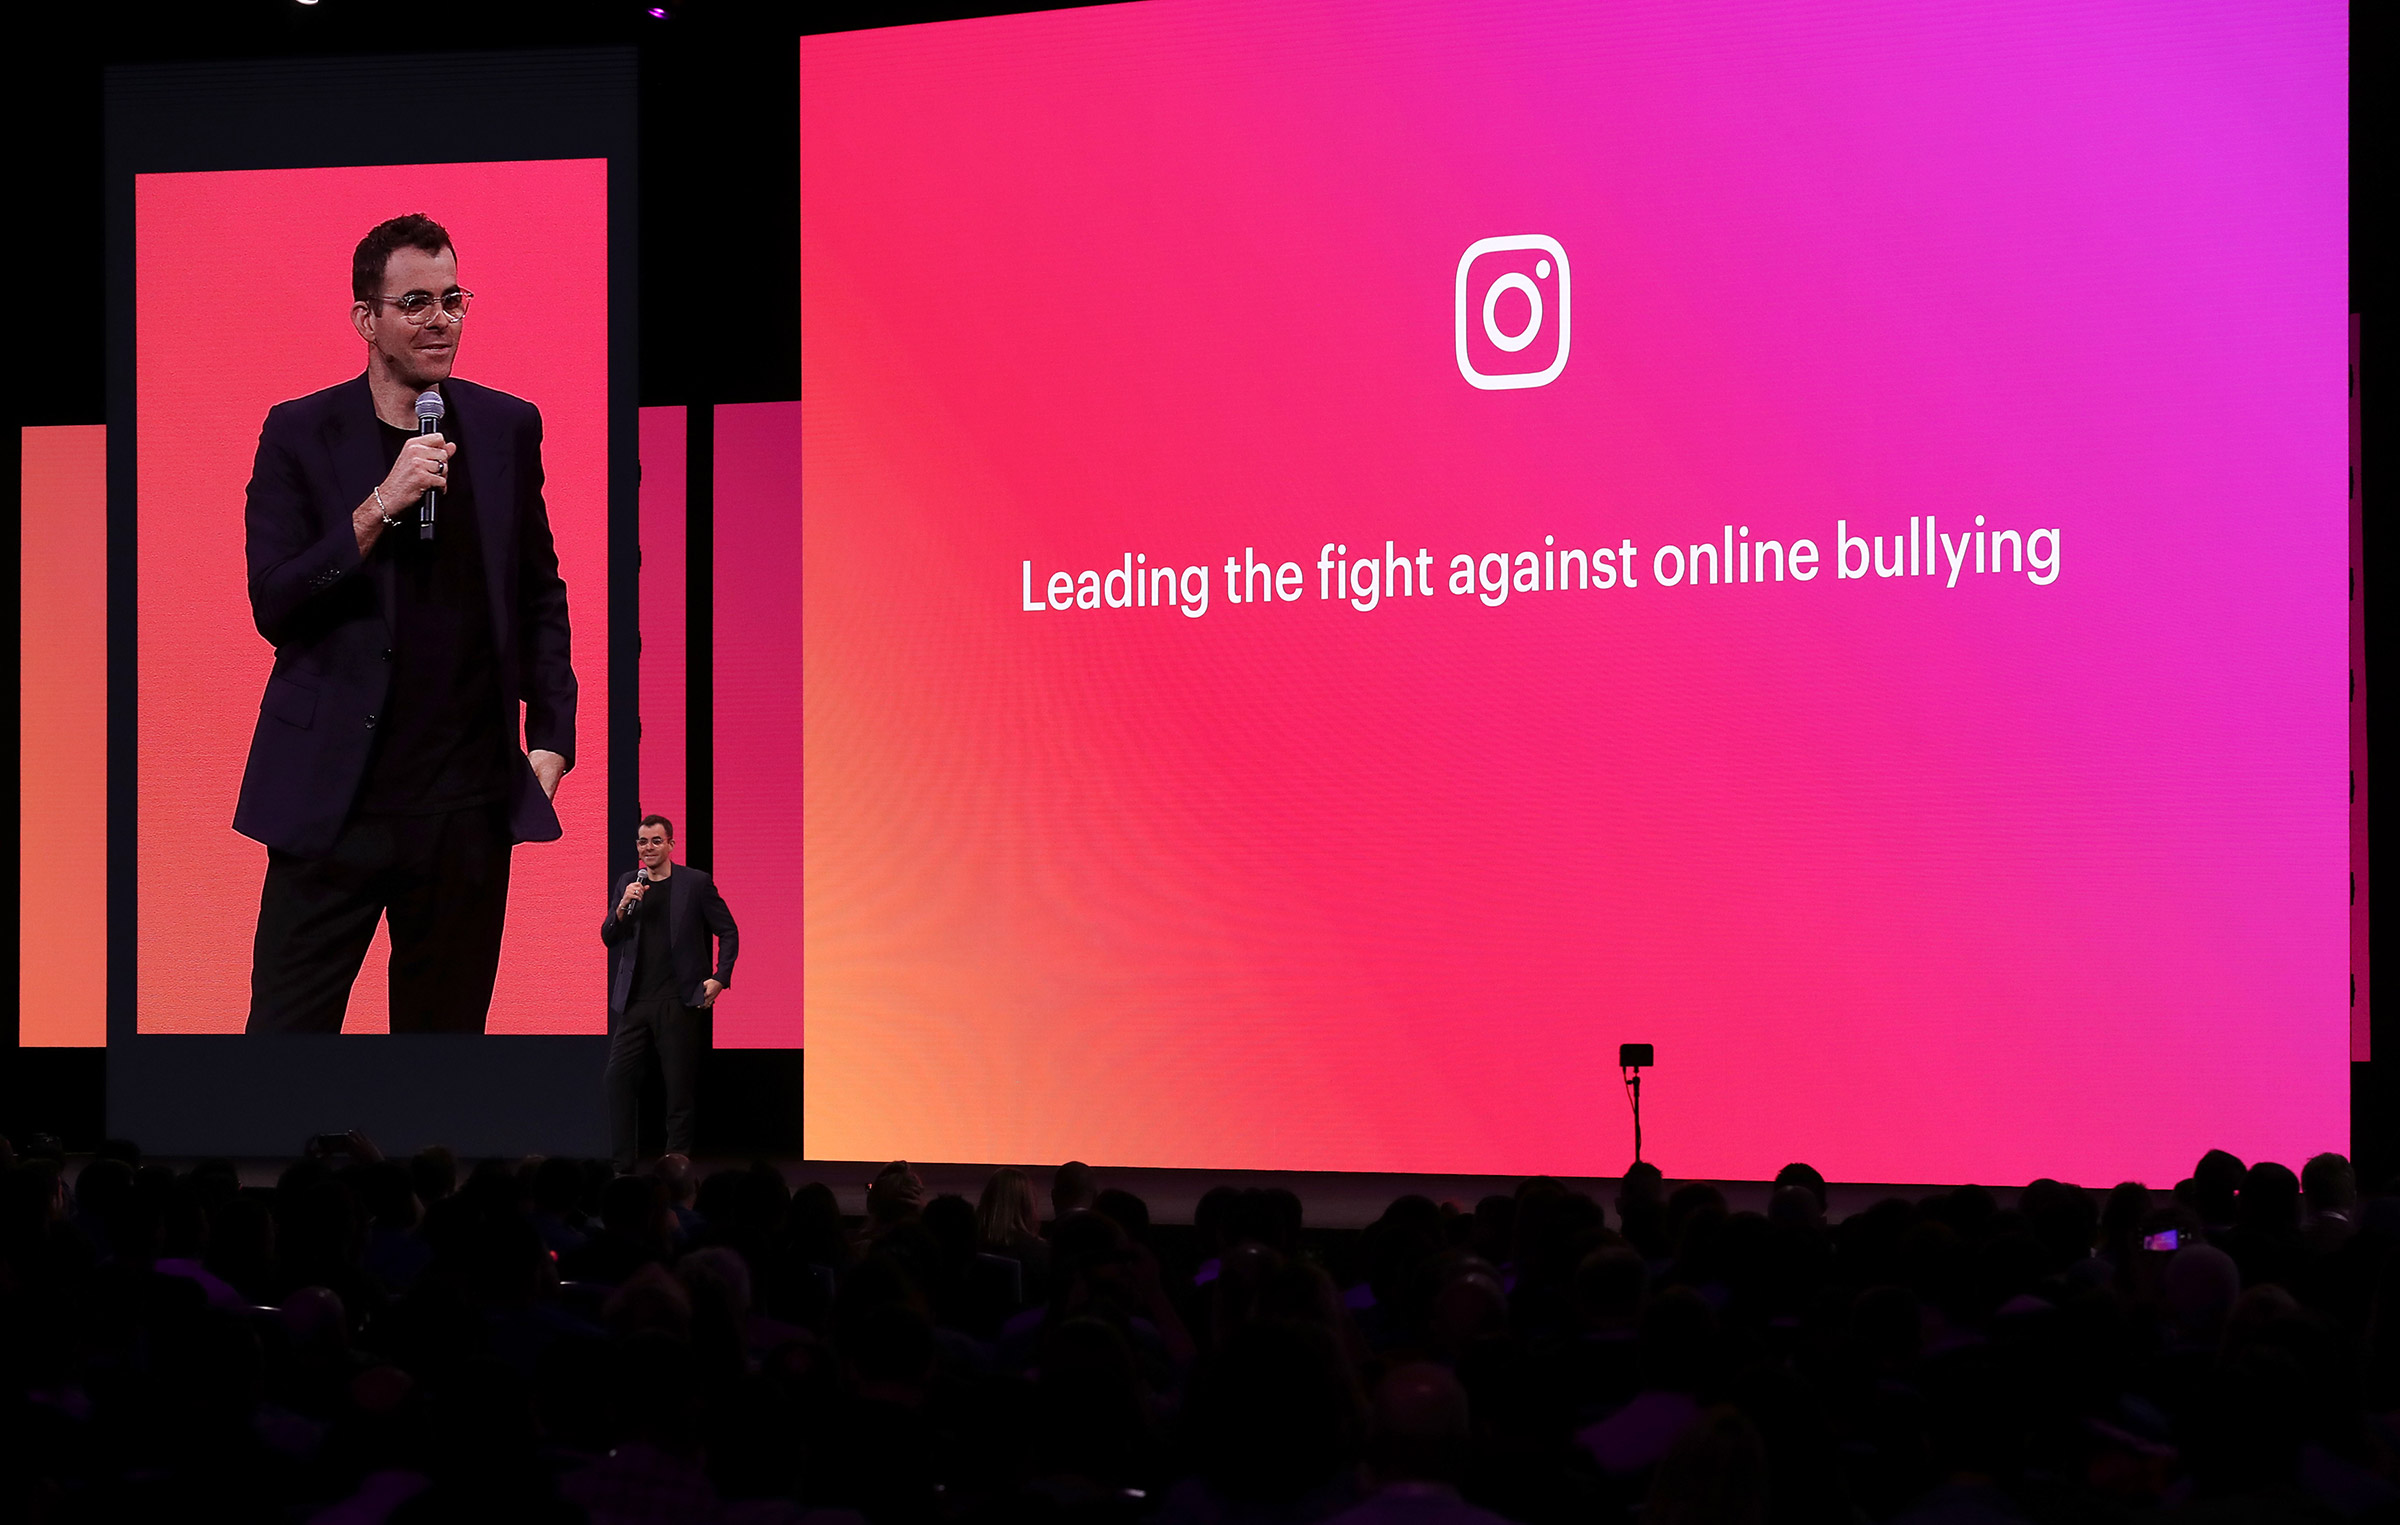 Instagram product head Adam Mosseri speaks during the F8 Facebook Developers conference in San Jose, Calif. on April 30, 2019.